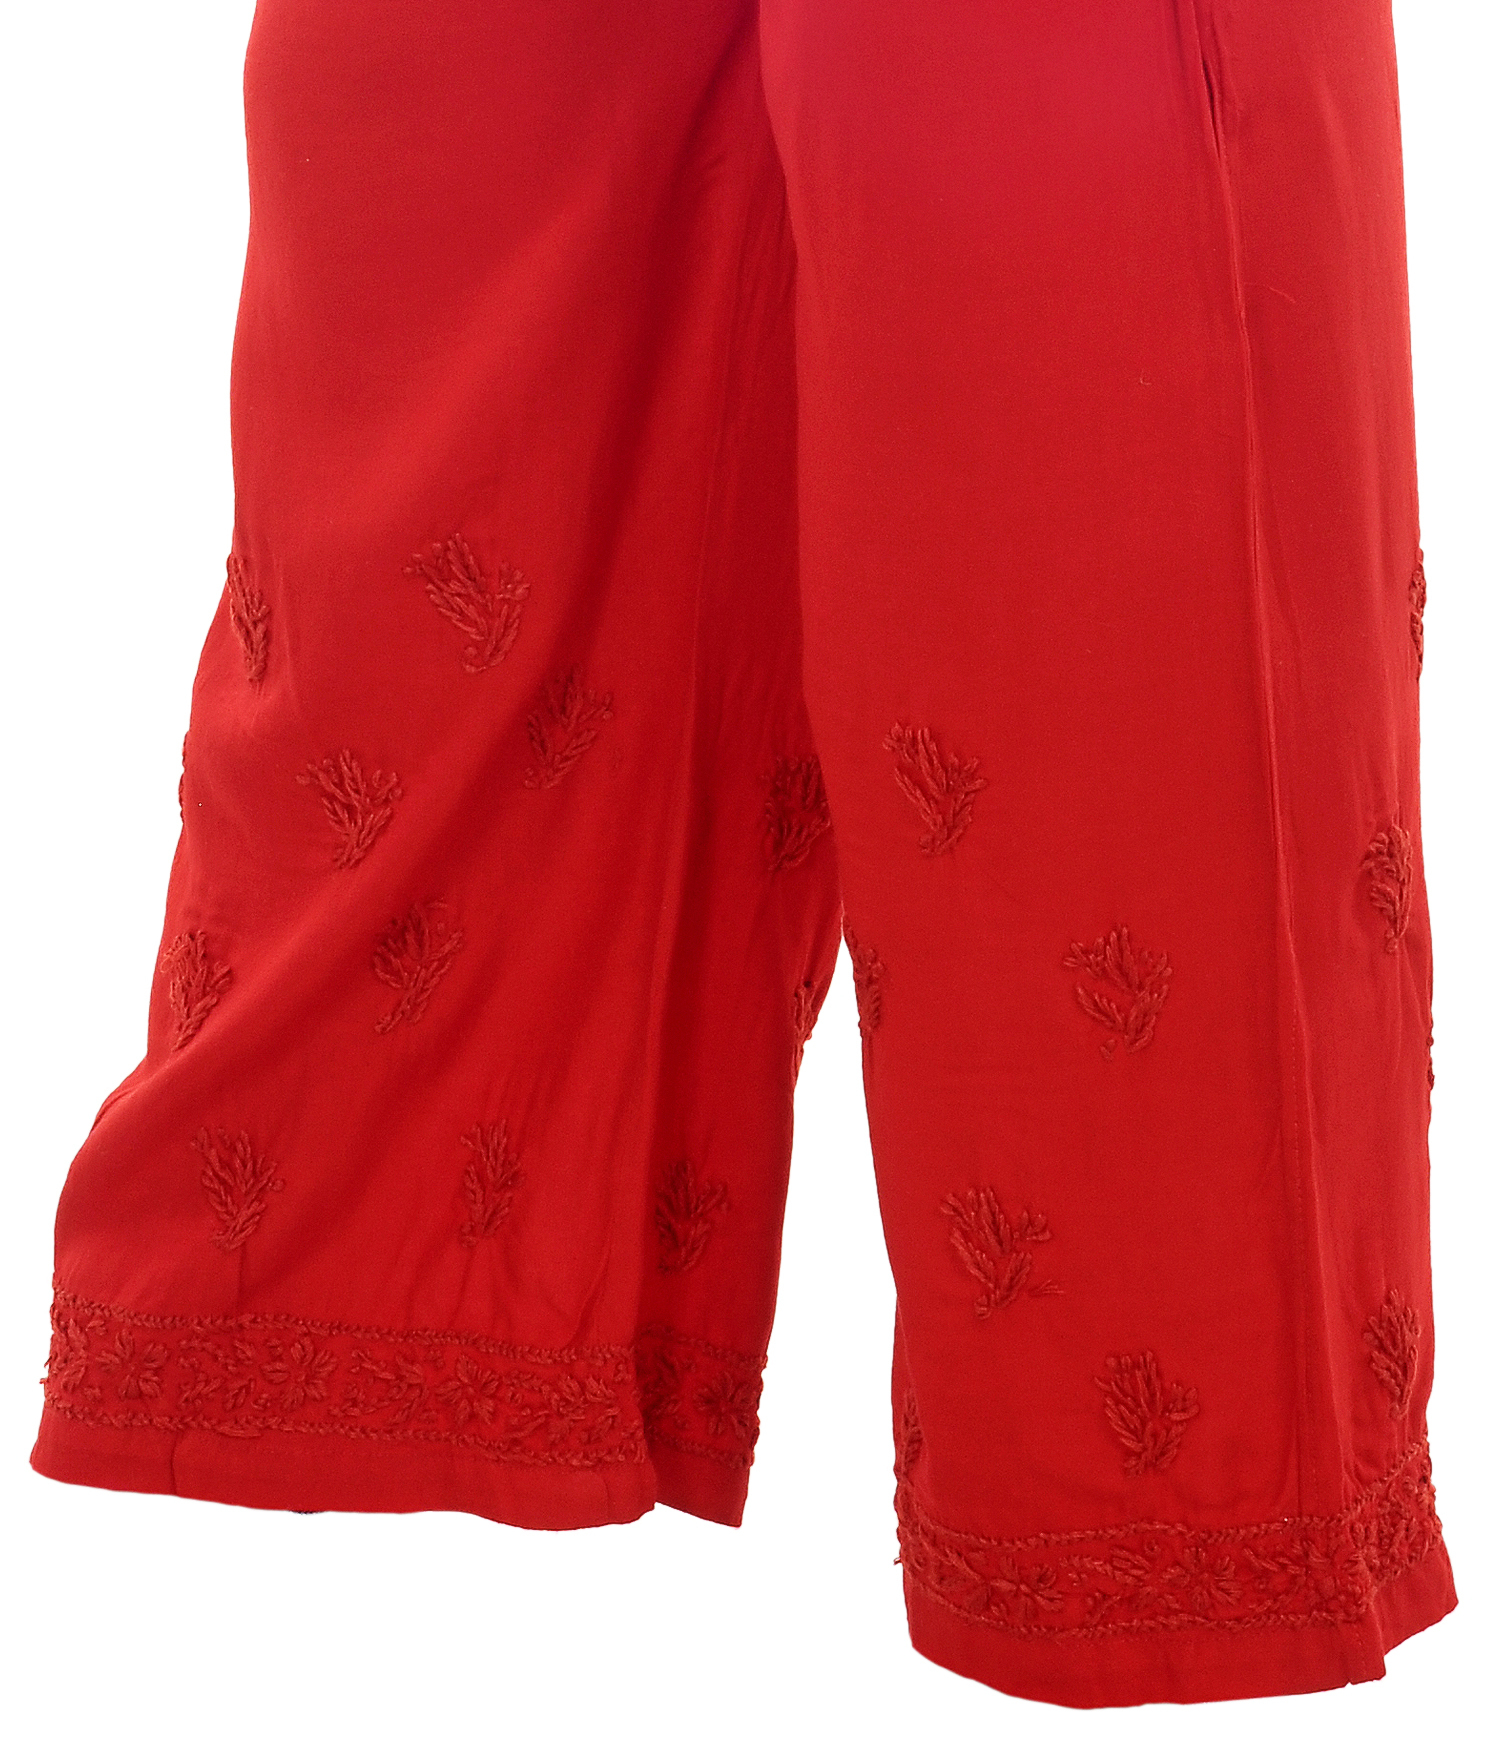 Ethnava Rayon Free Size Regular Fit Ghaas Patti Red Plazzo